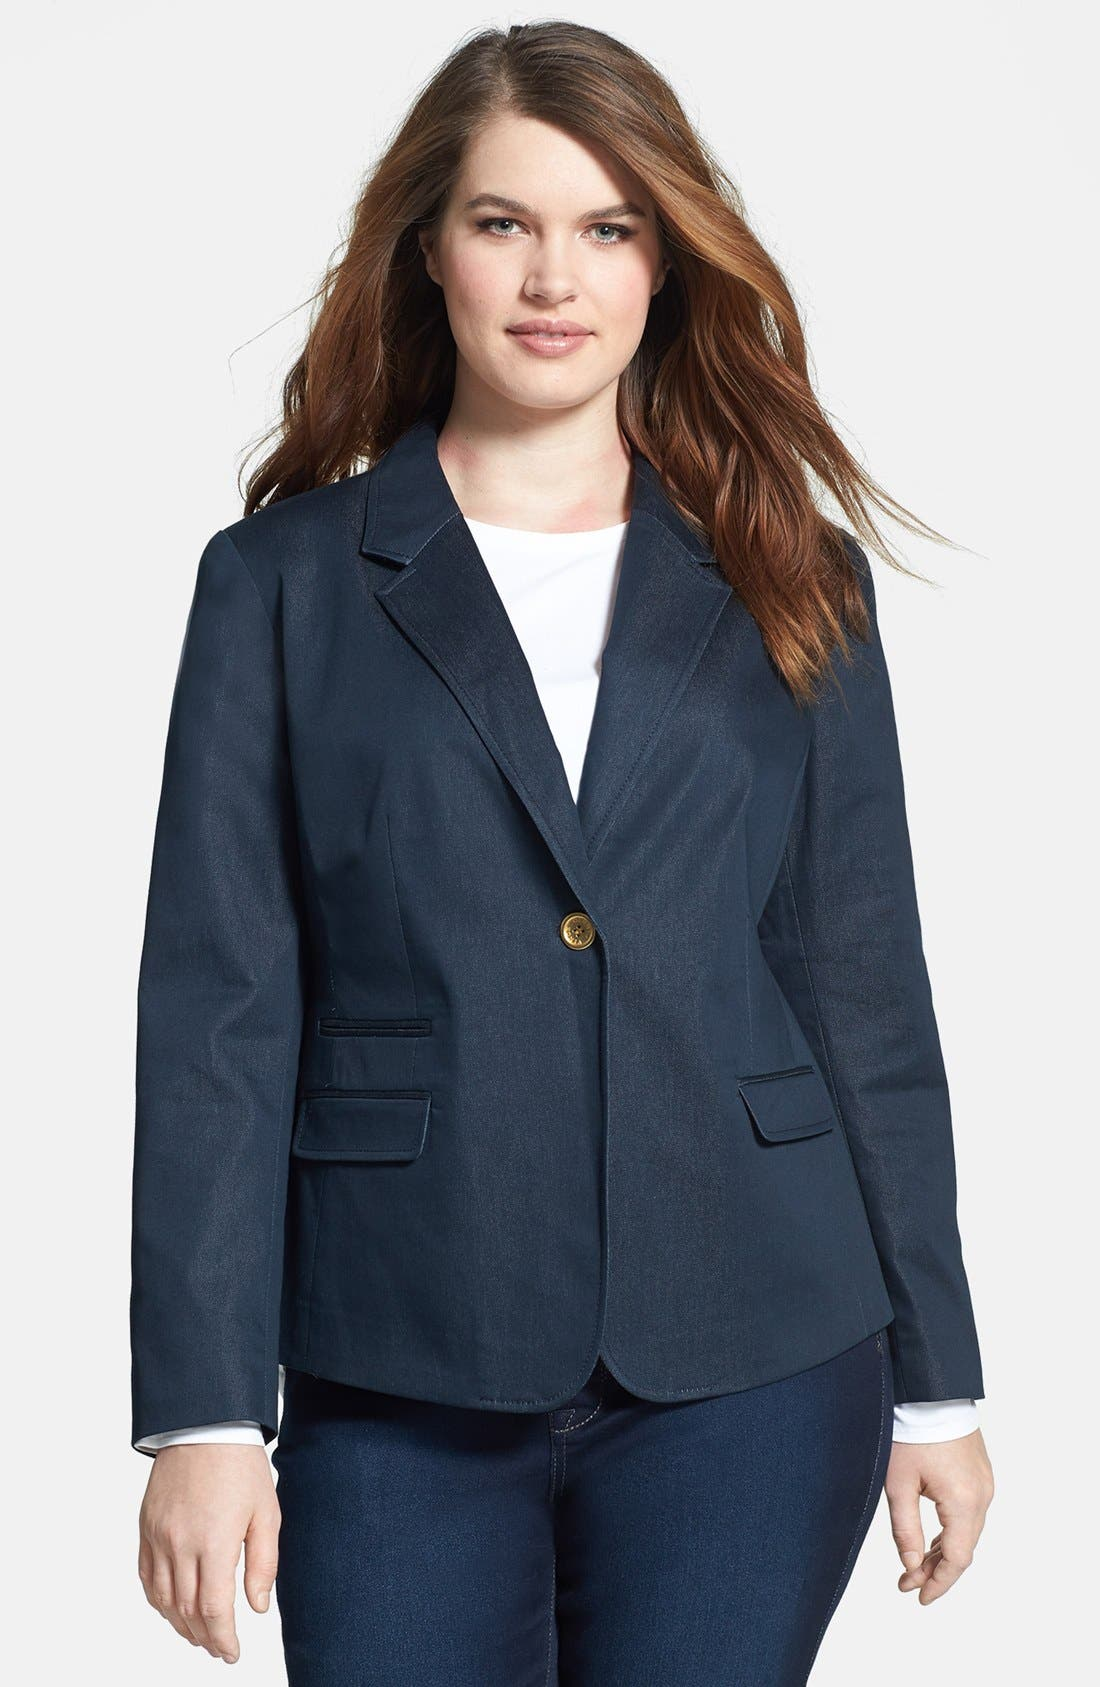 Alternate Image 1 Selected - Vince Camuto Single Button Blazer (Plus Size)